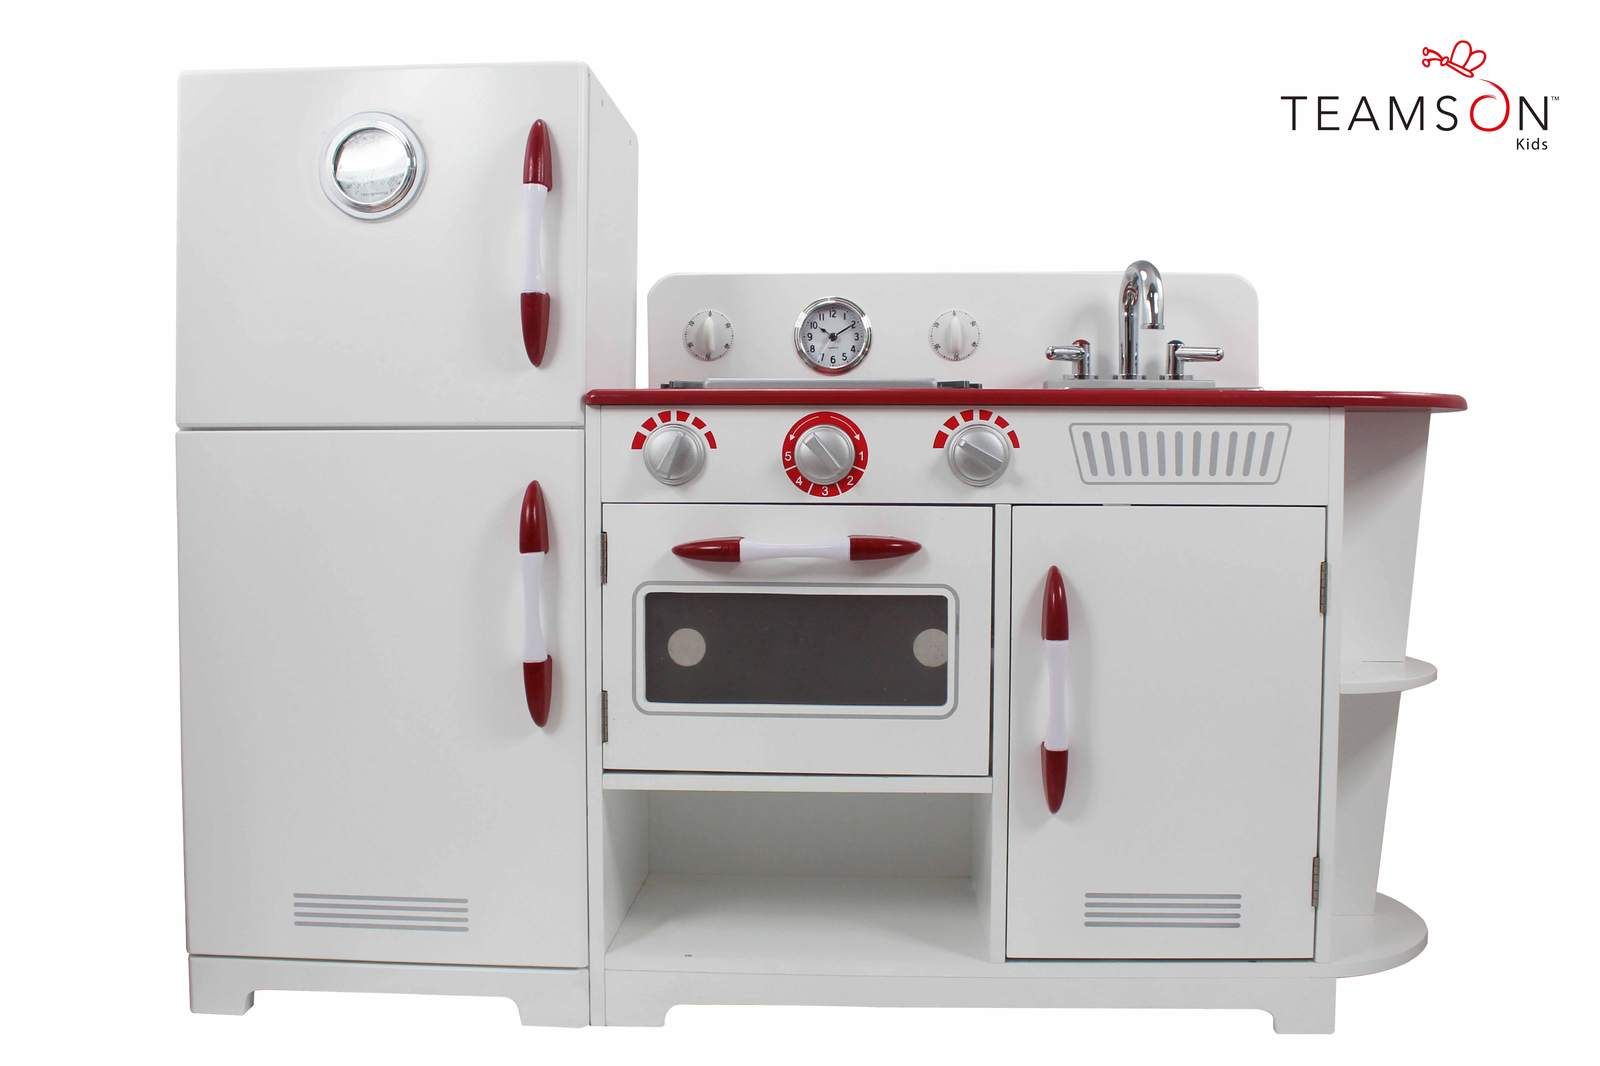 Tamson Kids 2 piece White & Red Play Kitchen